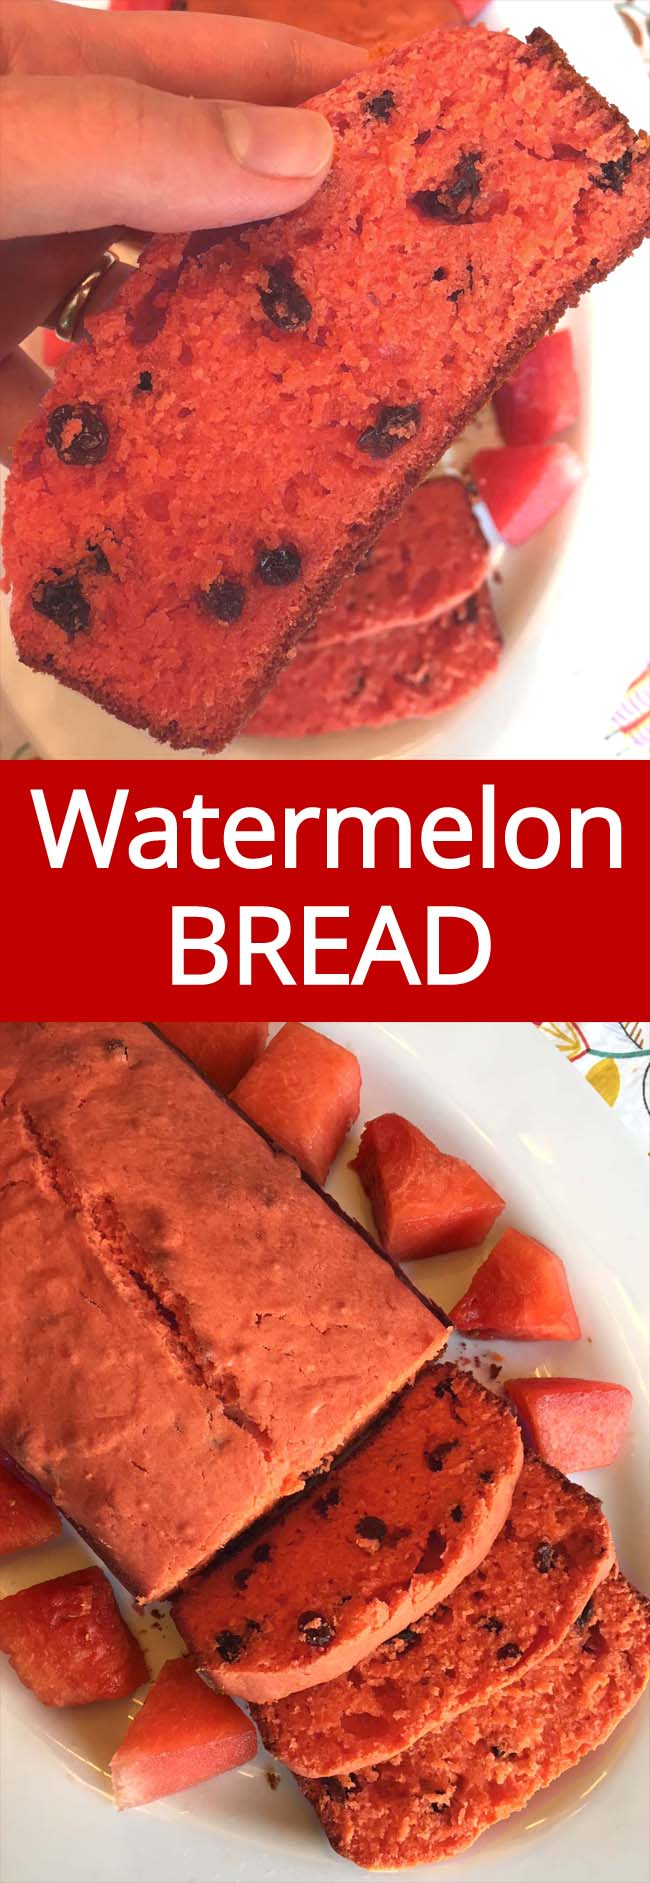 This fresh watermelon bread is amazing! What a perfect way to use up leftover watermelon!